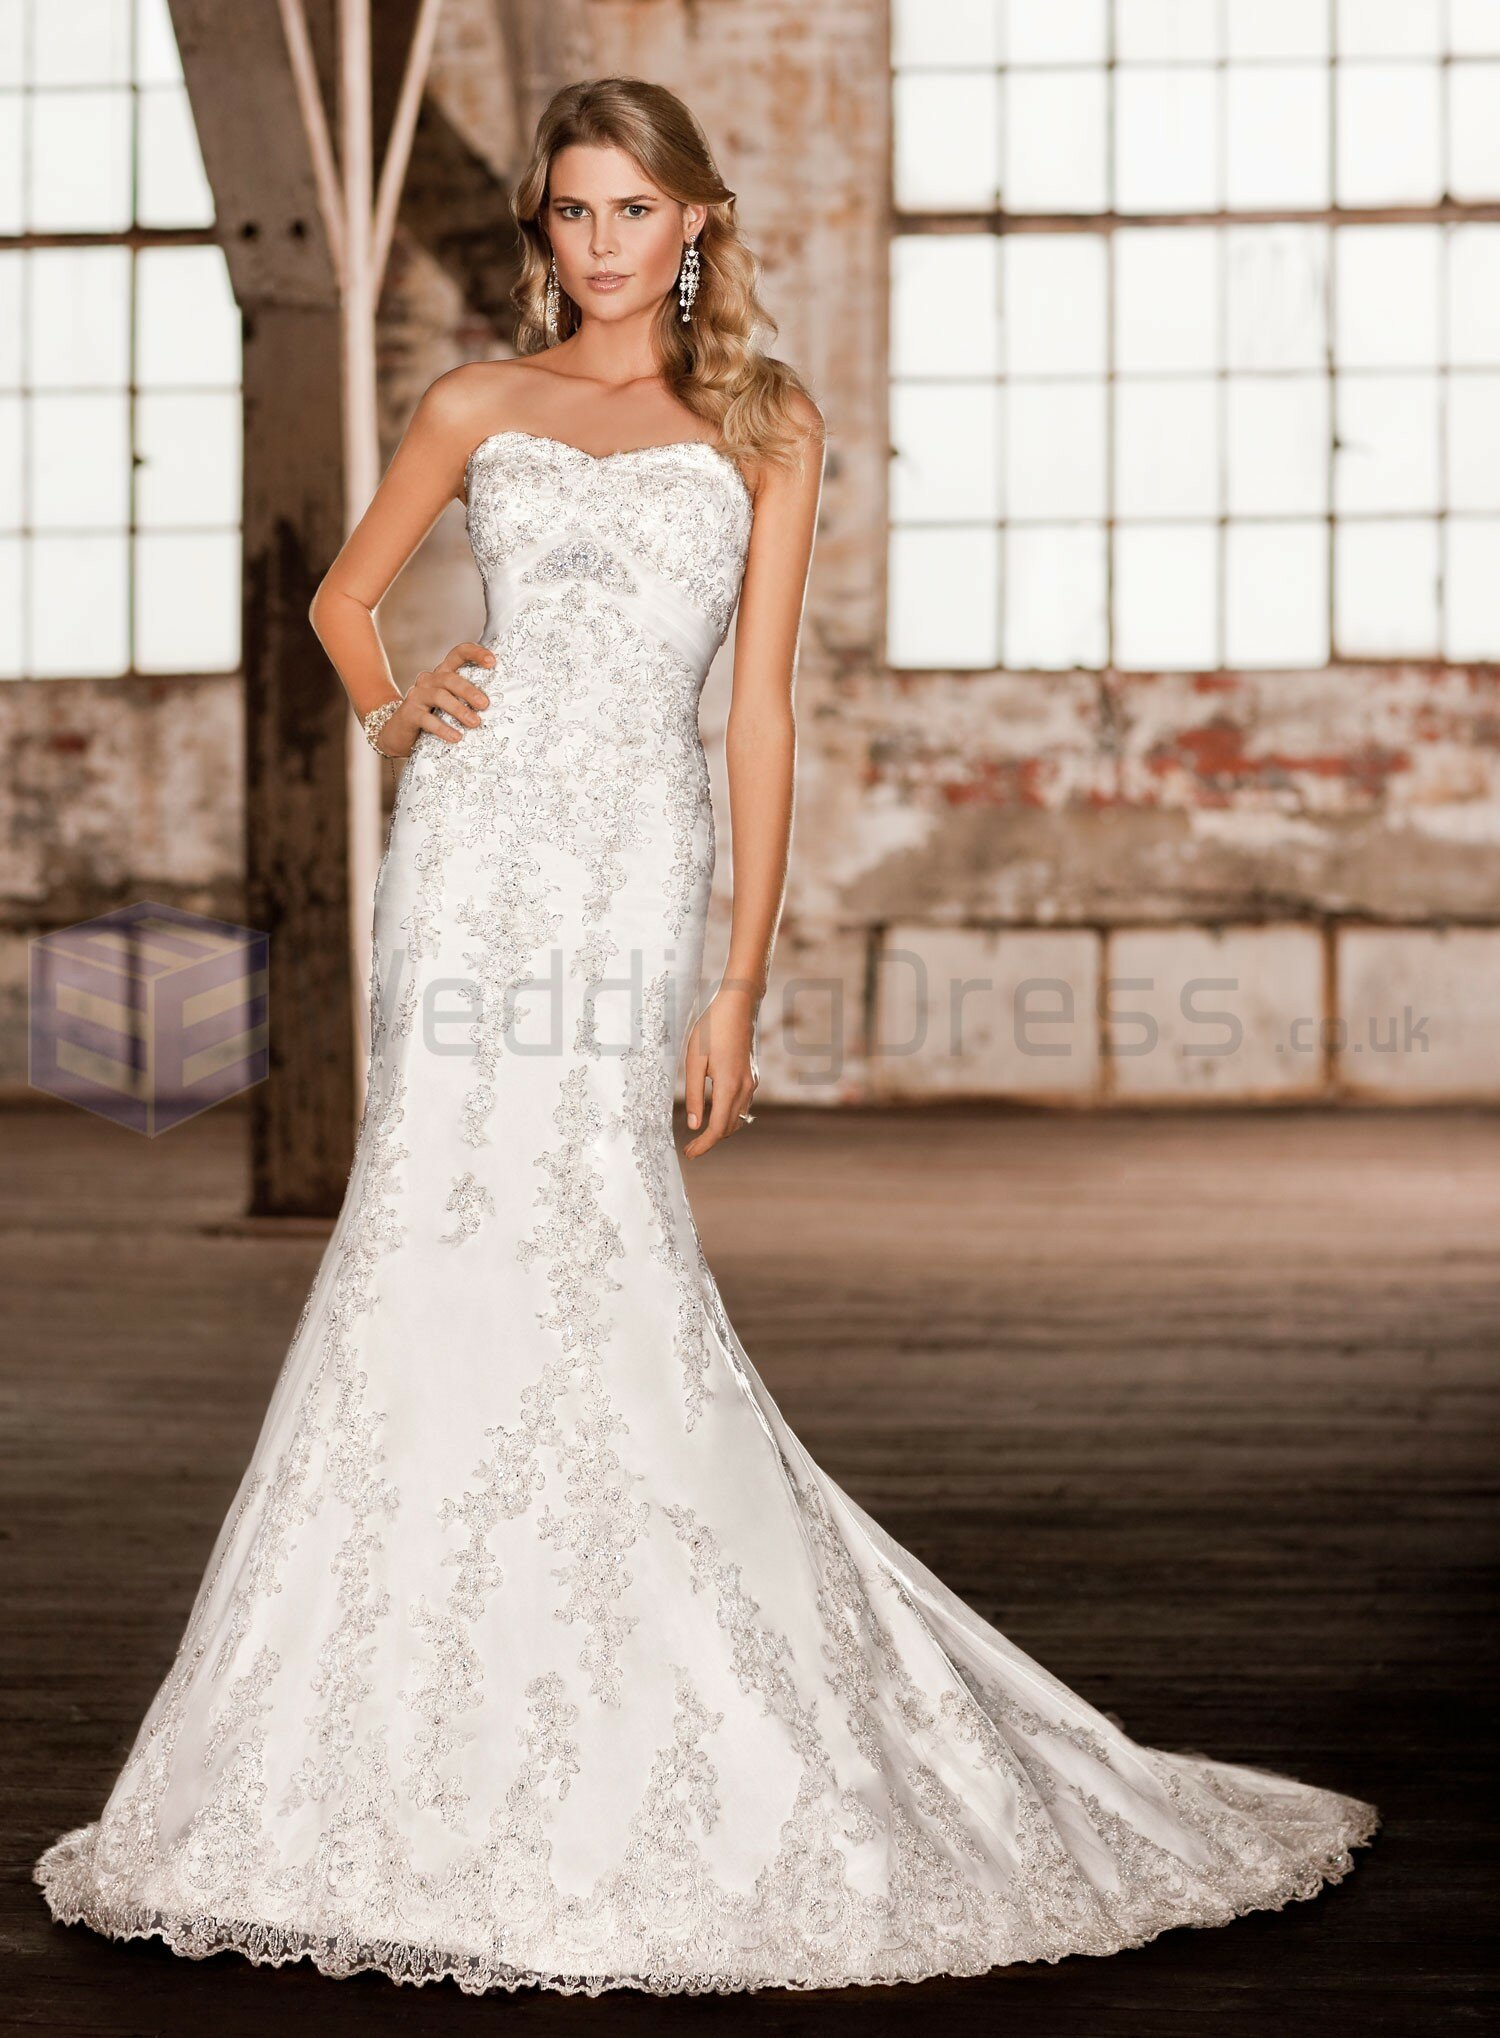 sweetheart neckline lace wedding dresses pictures ideas